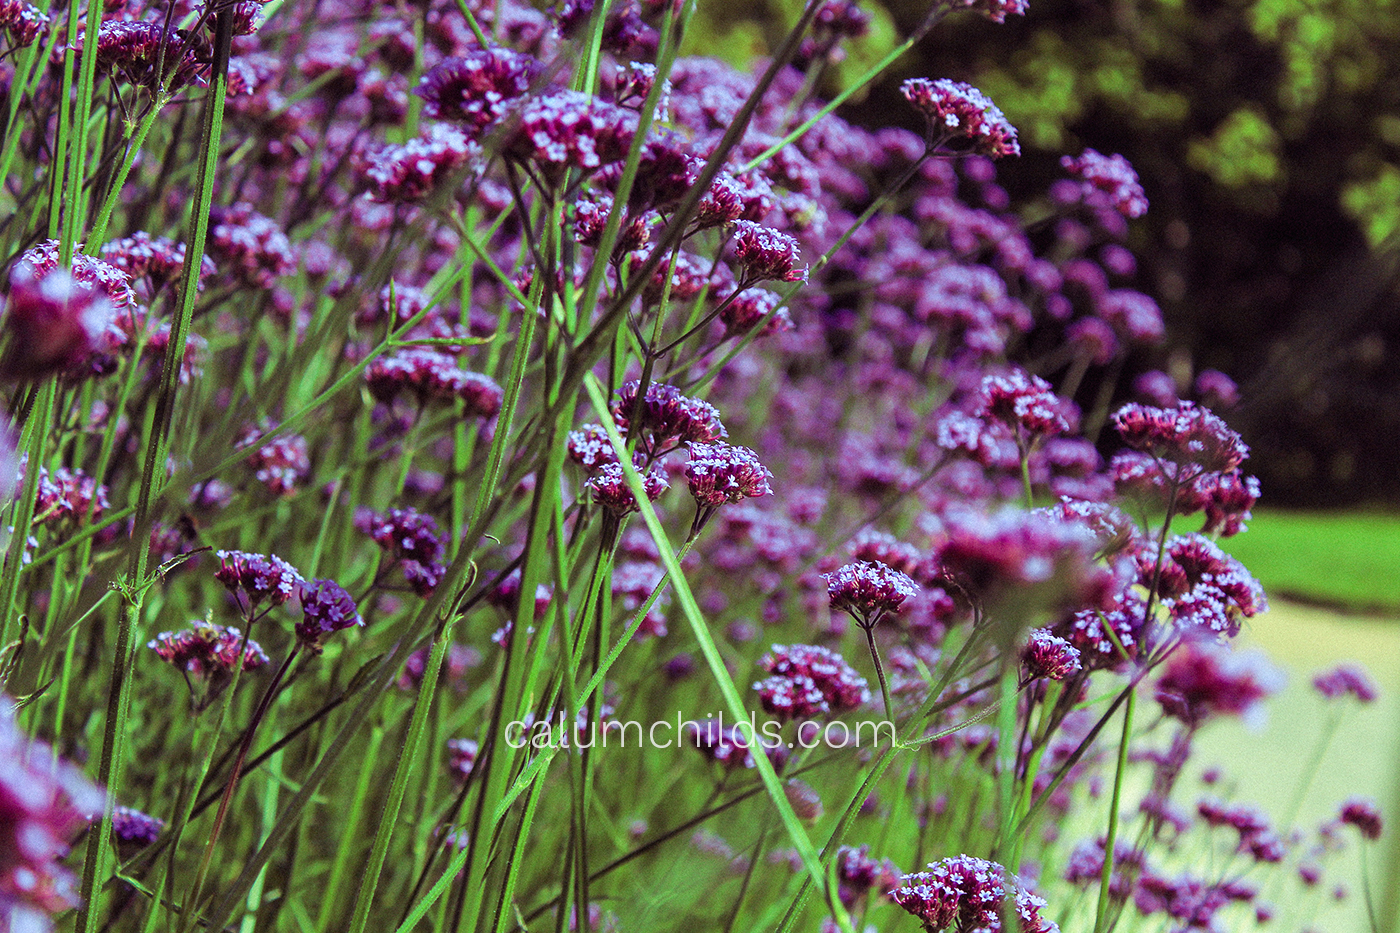 Purple verbenas take up most of the image with their purple flower-heads and green stalks.